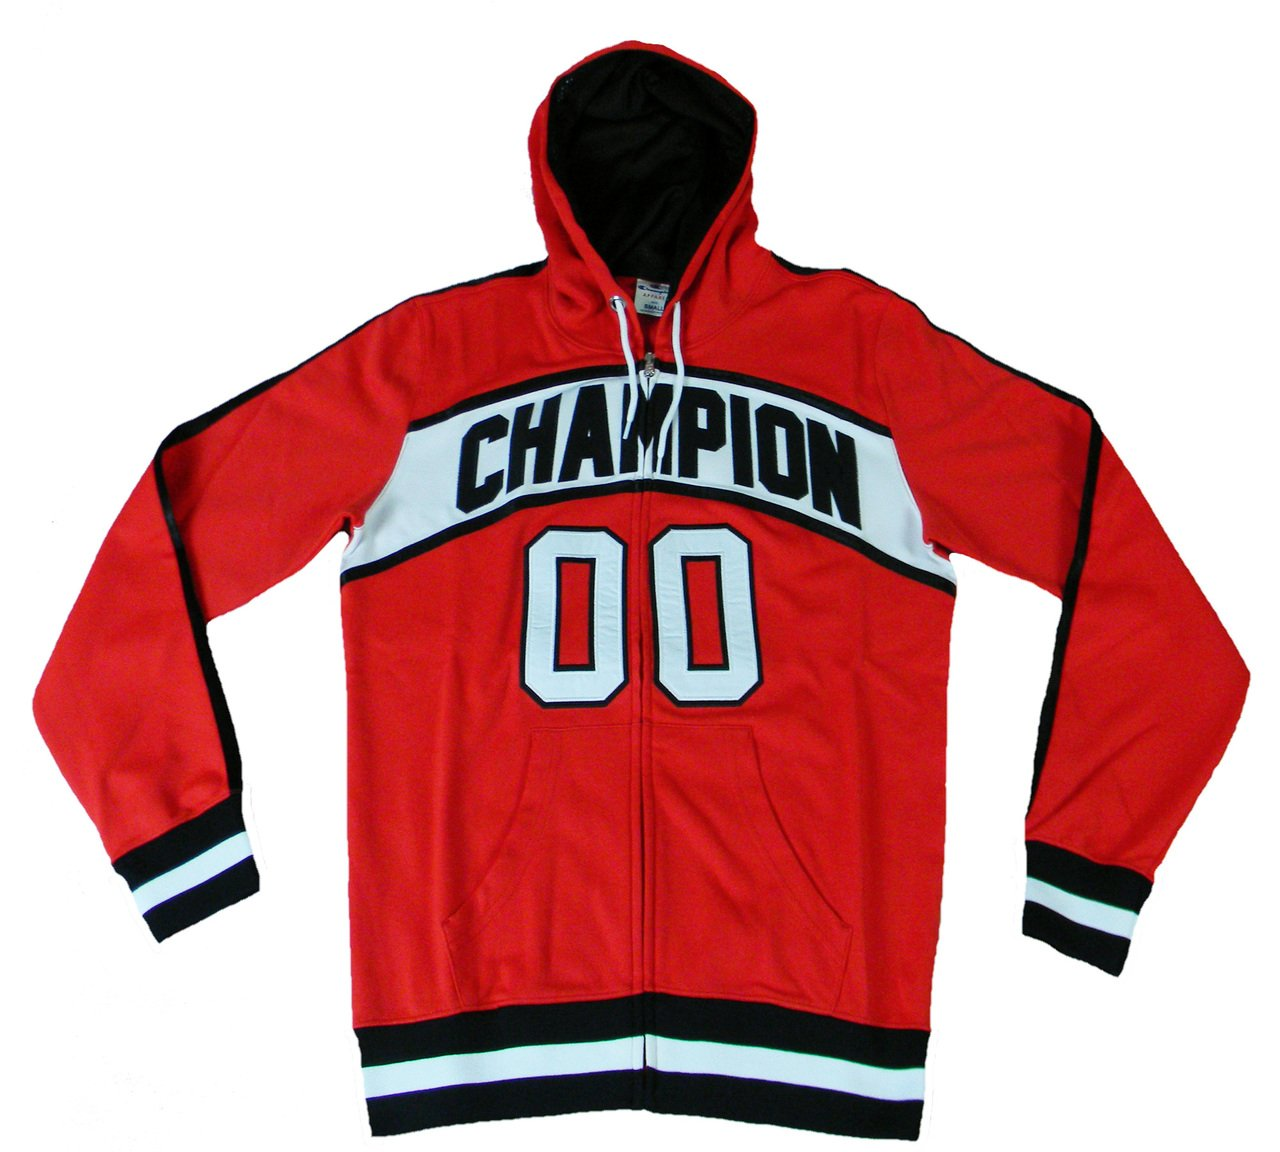 Champion Hooded Full Zip mit Kapuze Mann M BBALL Polybaumwolle CRD (rot)